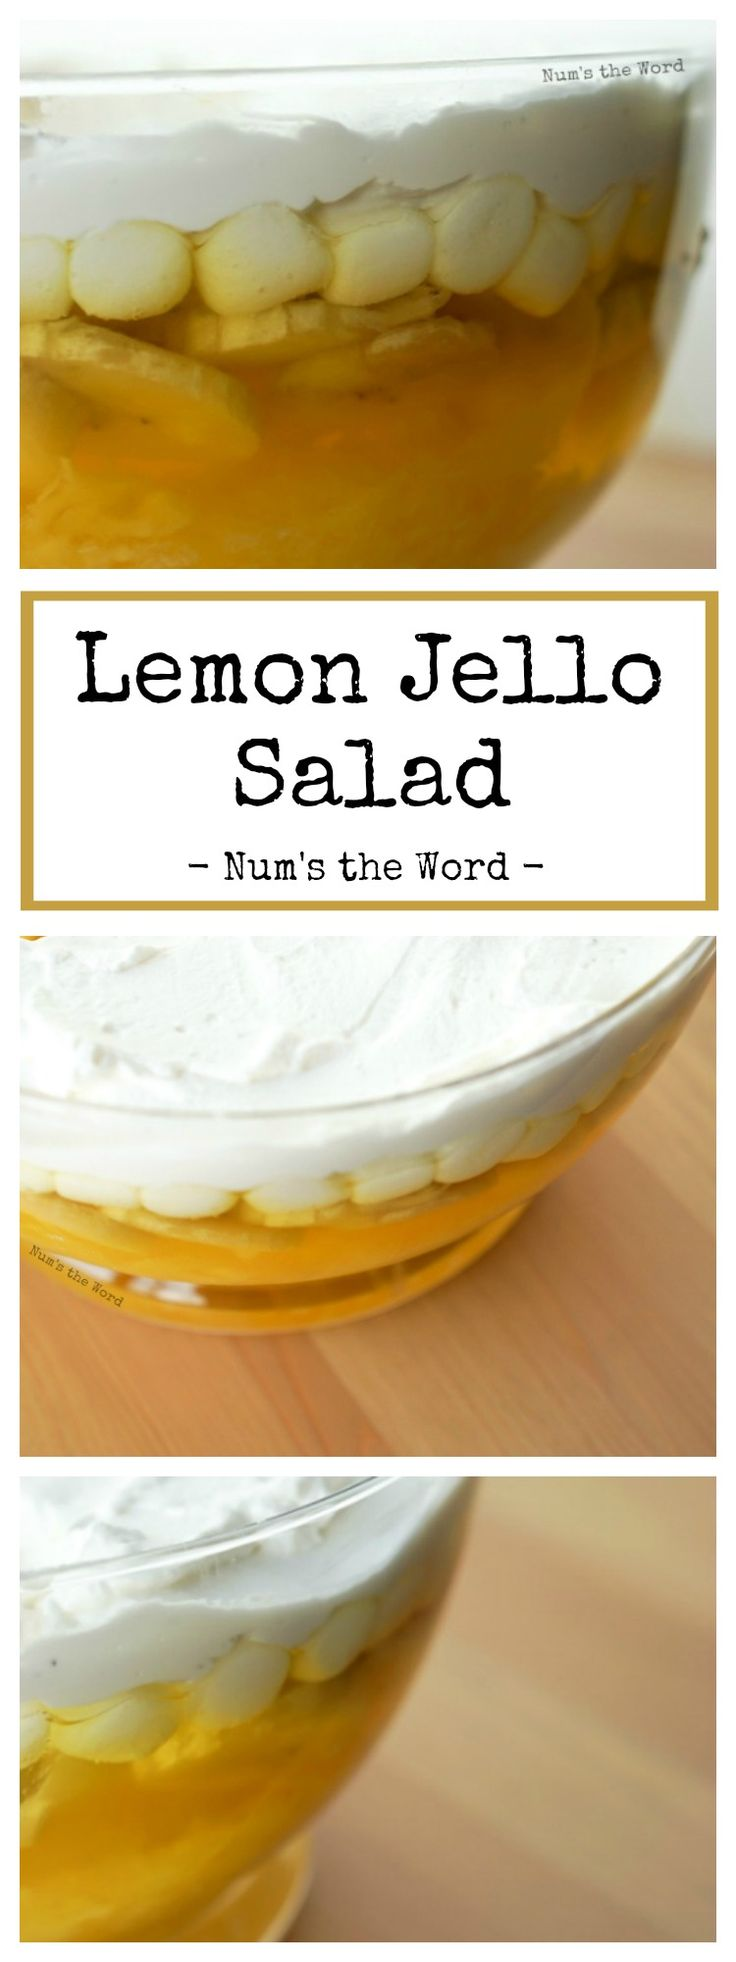 Lemon Jello Salad is a simple side dish that goes great with any meal. Loved by kids and adults alike, it's creamy, smooth and packed with bananas and pineapple!